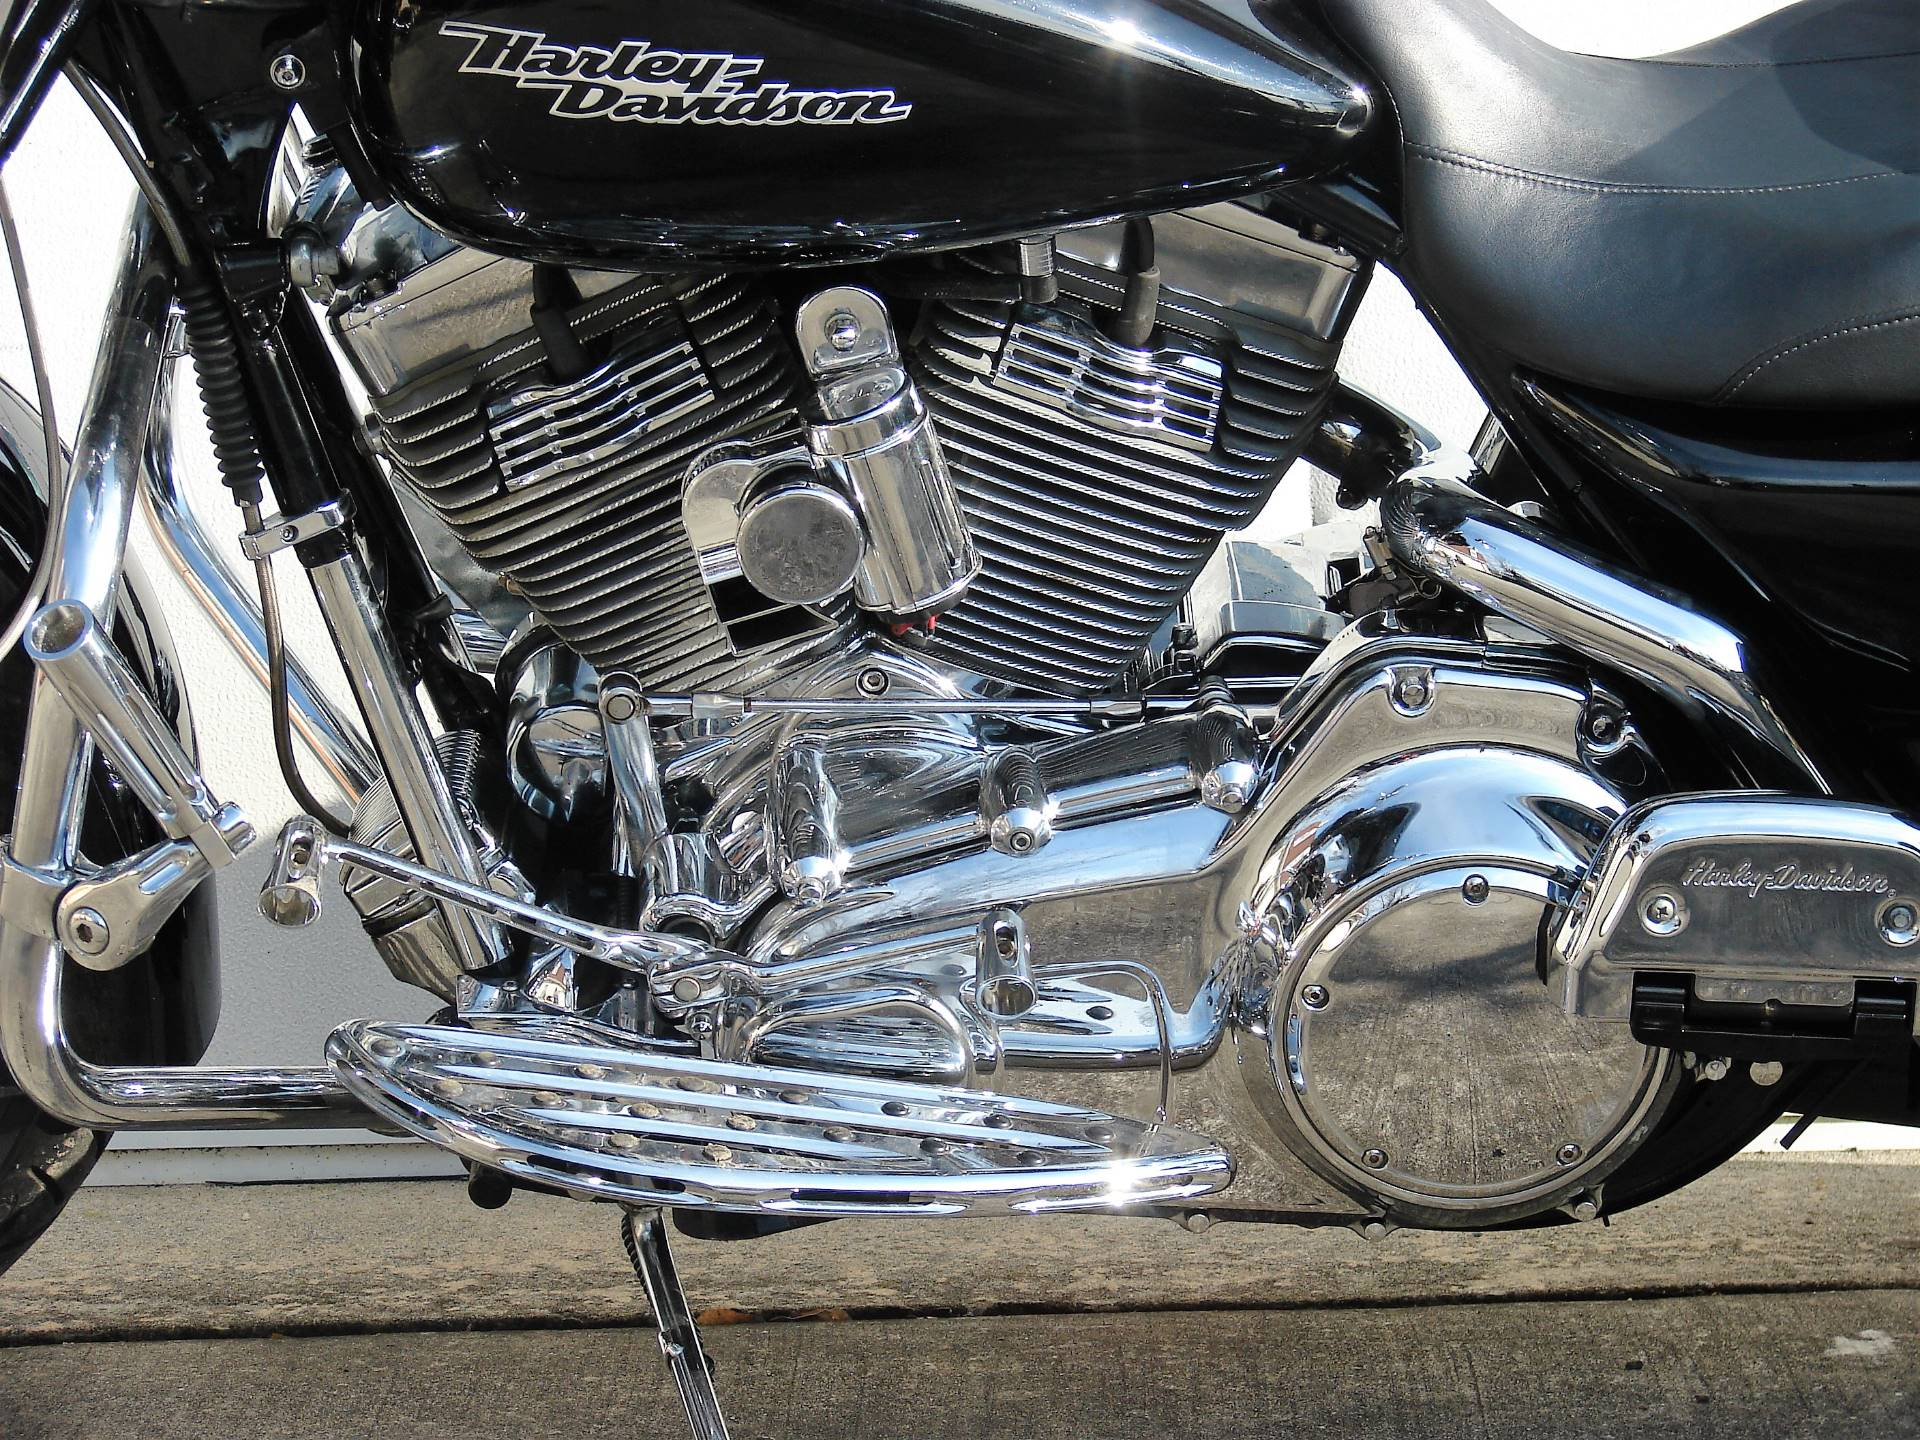 2008 Harley-Davidson FLHX Street Glide in Williamstown, New Jersey - Photo 8